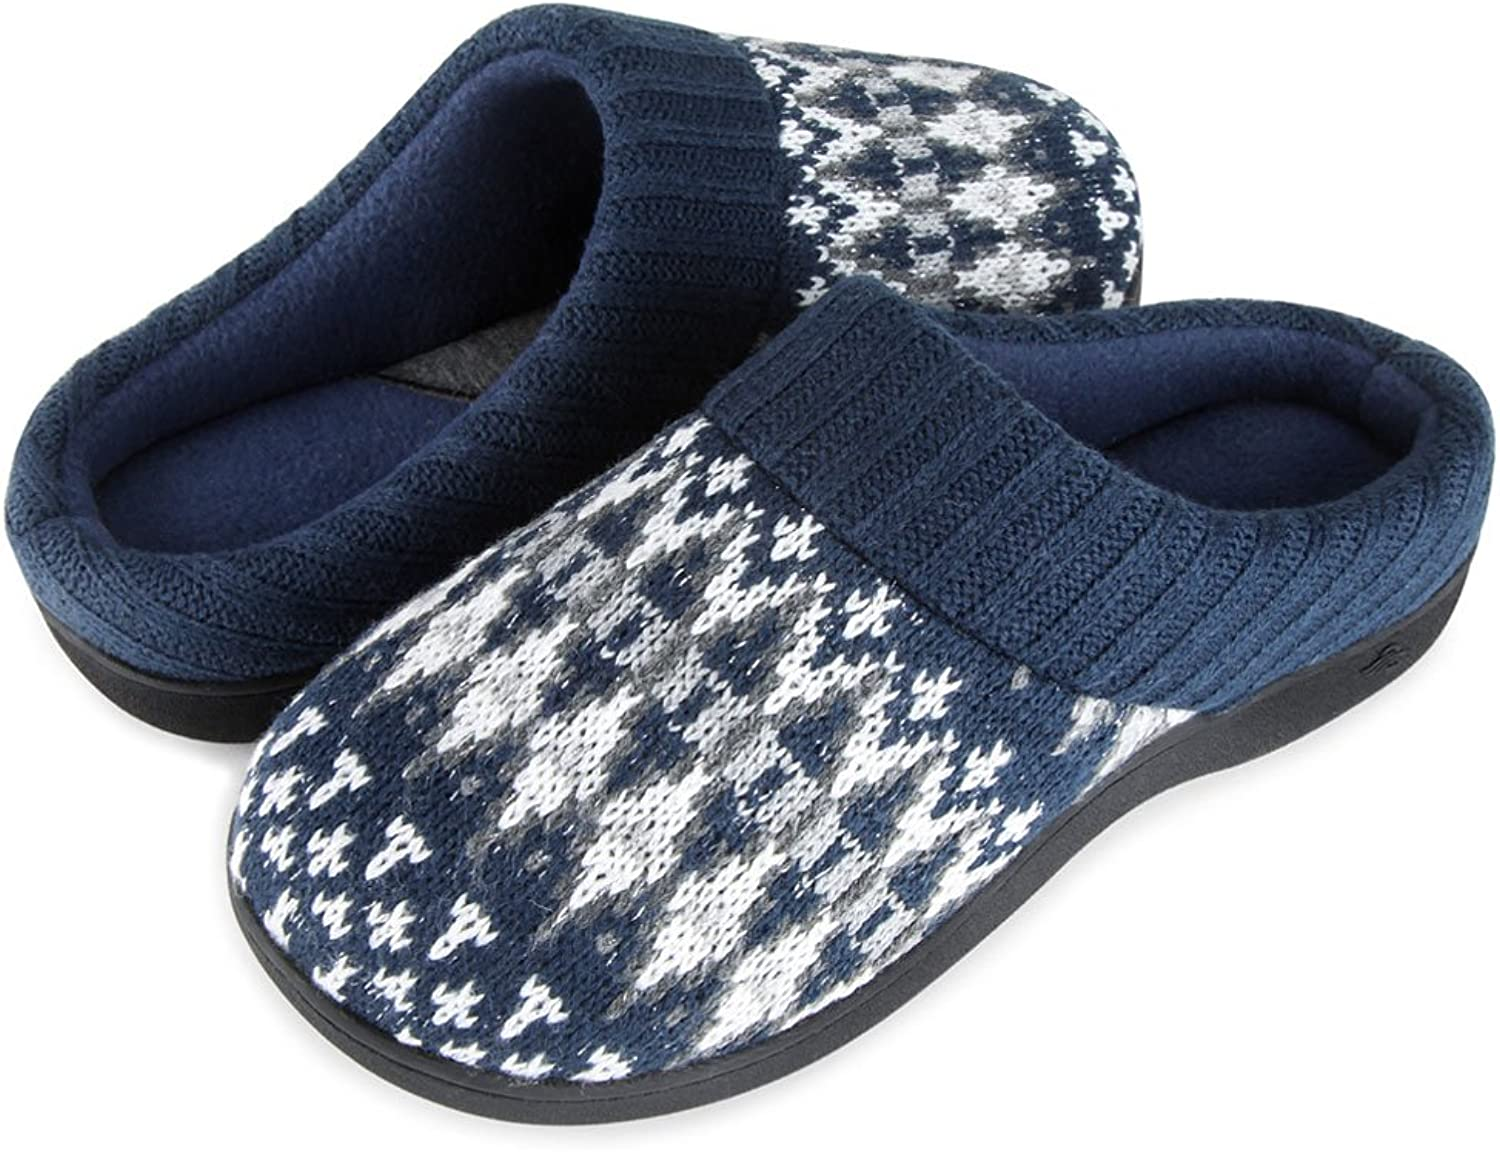 Wishcotton Zigzagger Womens Breathable Knit Memory Foam Indoor Slippers House shoes with Nonslip Rubber Sole Navy bluee